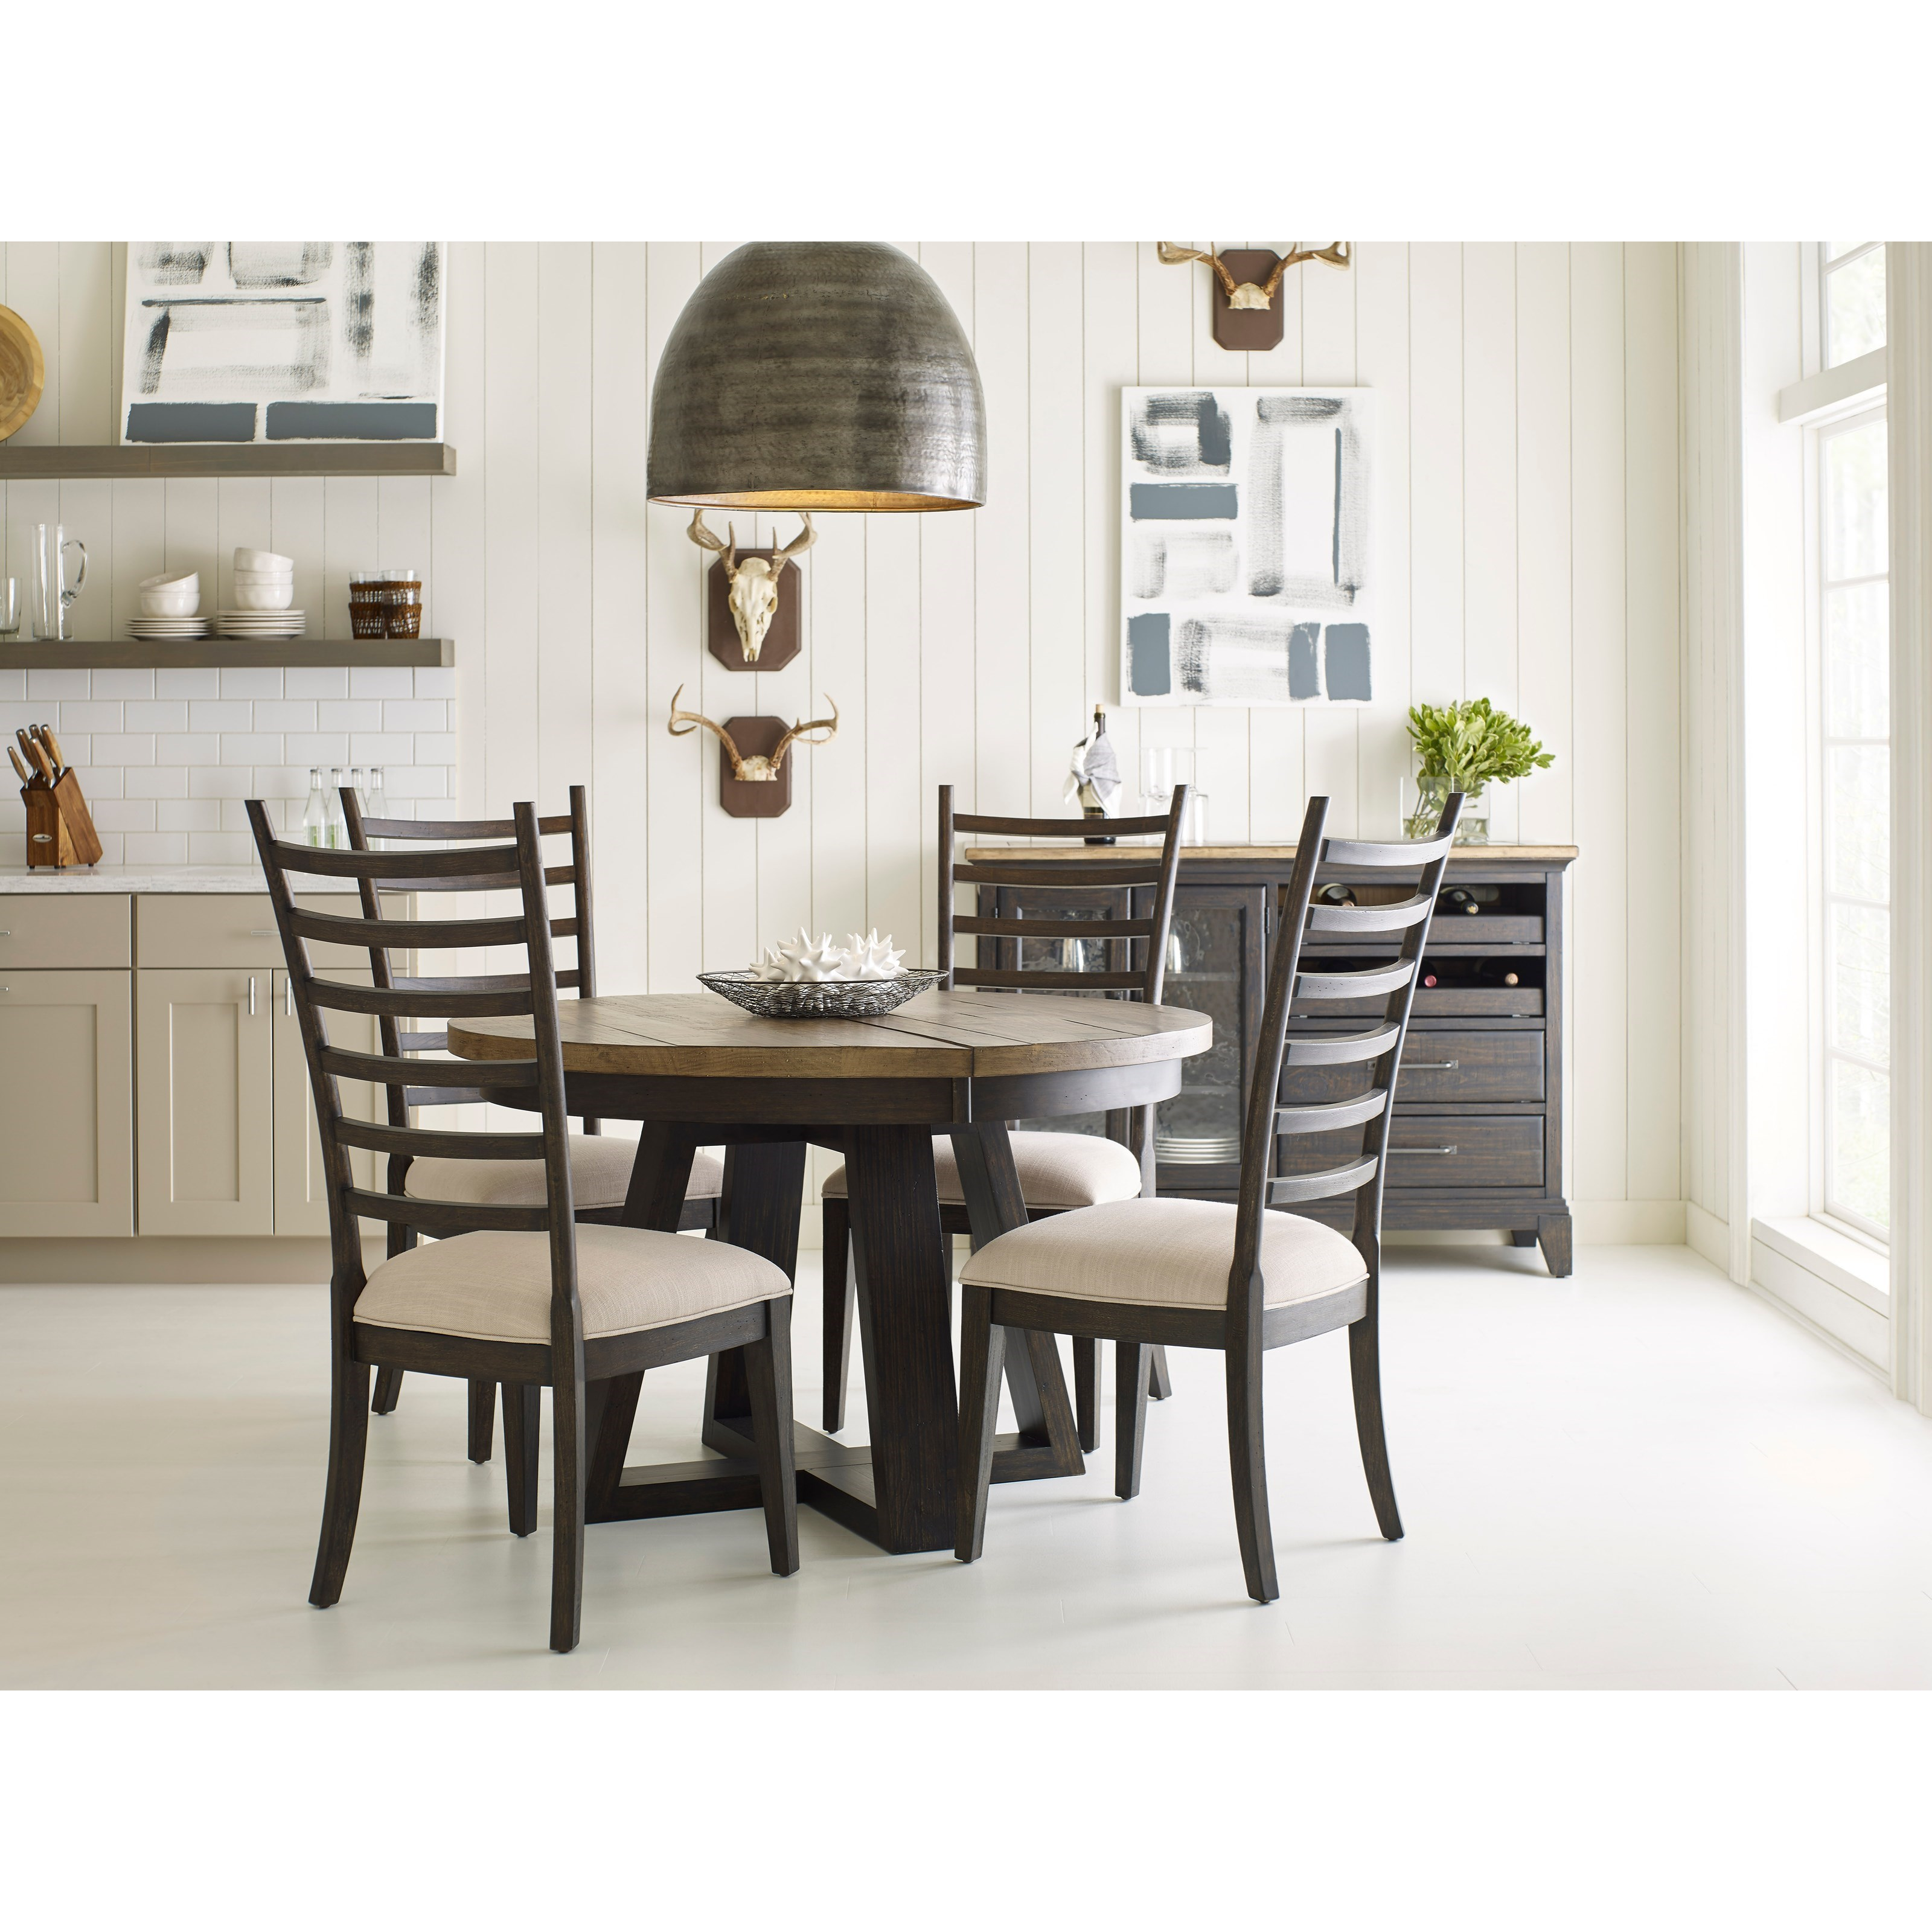 Plank Road Casual Dining Room Group by Kincaid Furniture at Johnny Janosik